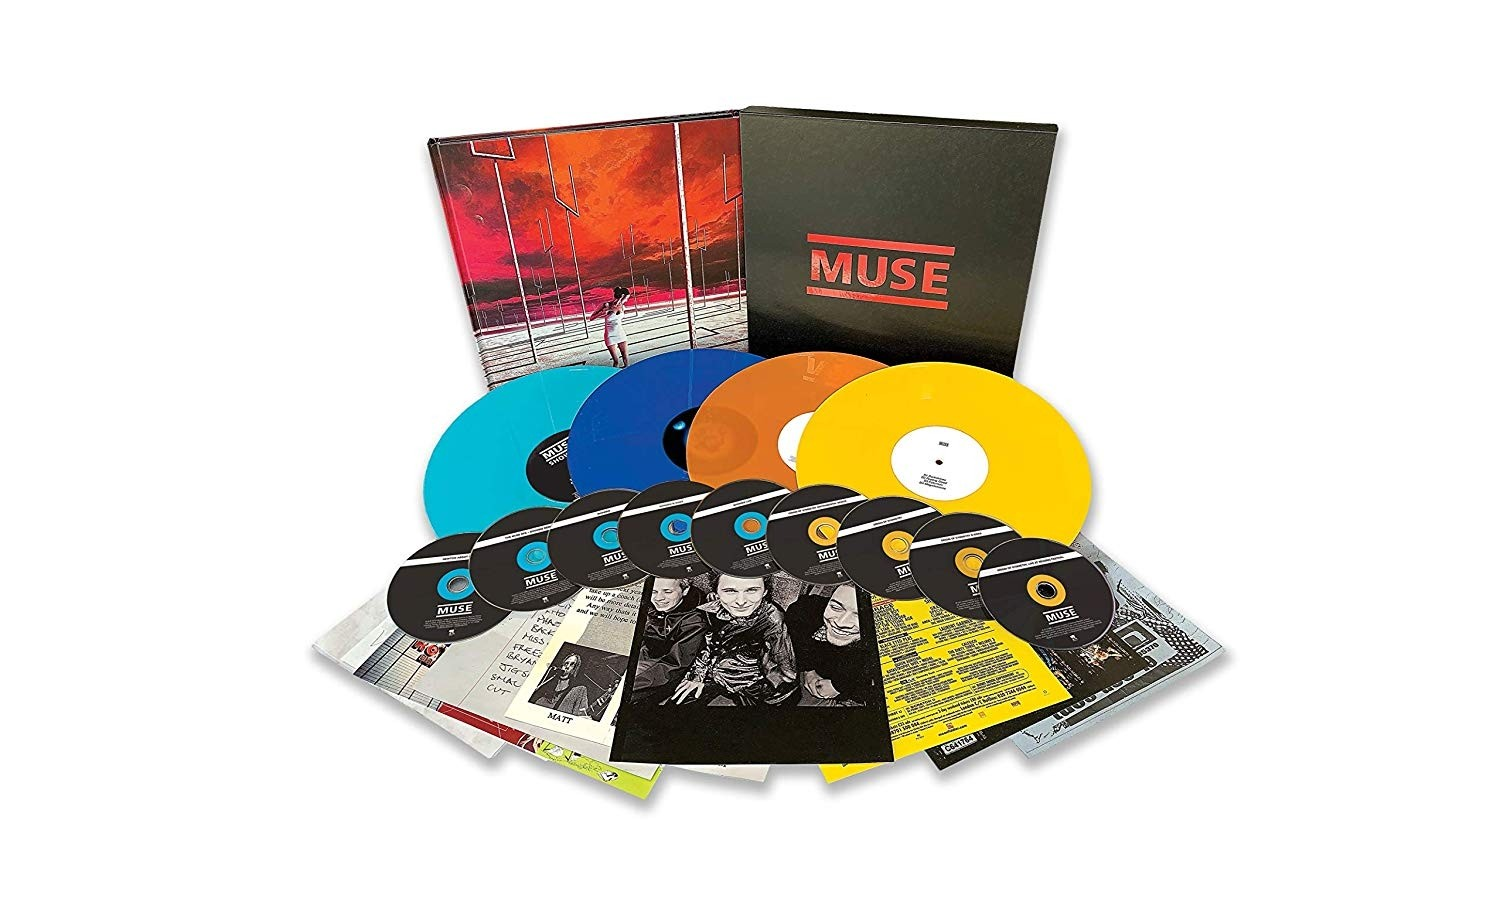 Buy Muse - Origins Of Muse Vinyl Boxset at SRCVinyl. Limited edition vinyl and CD boxset.